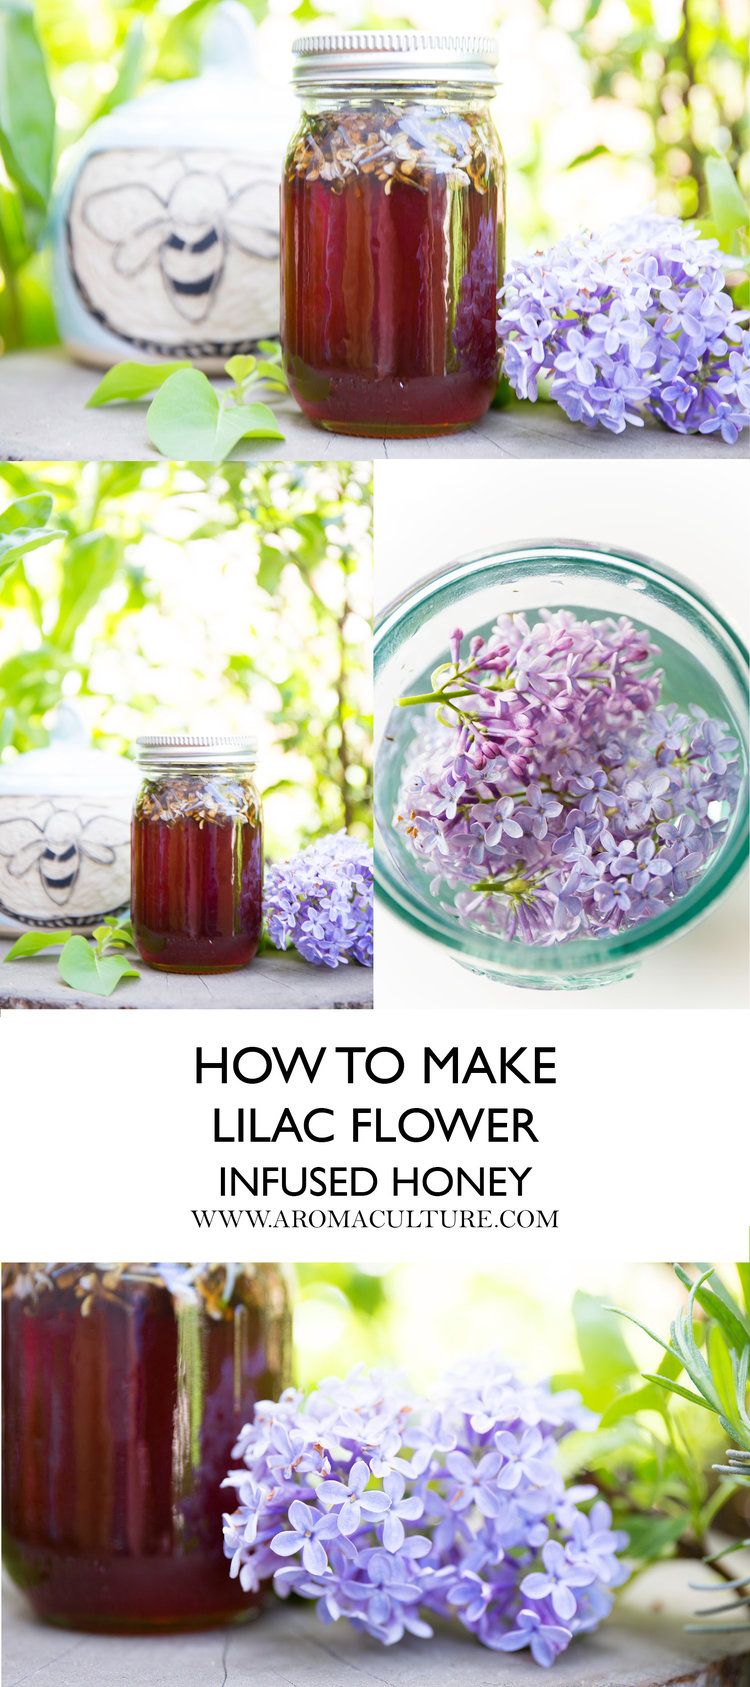 How To Make Use Lilac Flower Honey In 2020 With Images Lilac Flowers Lilac Honey Recipes